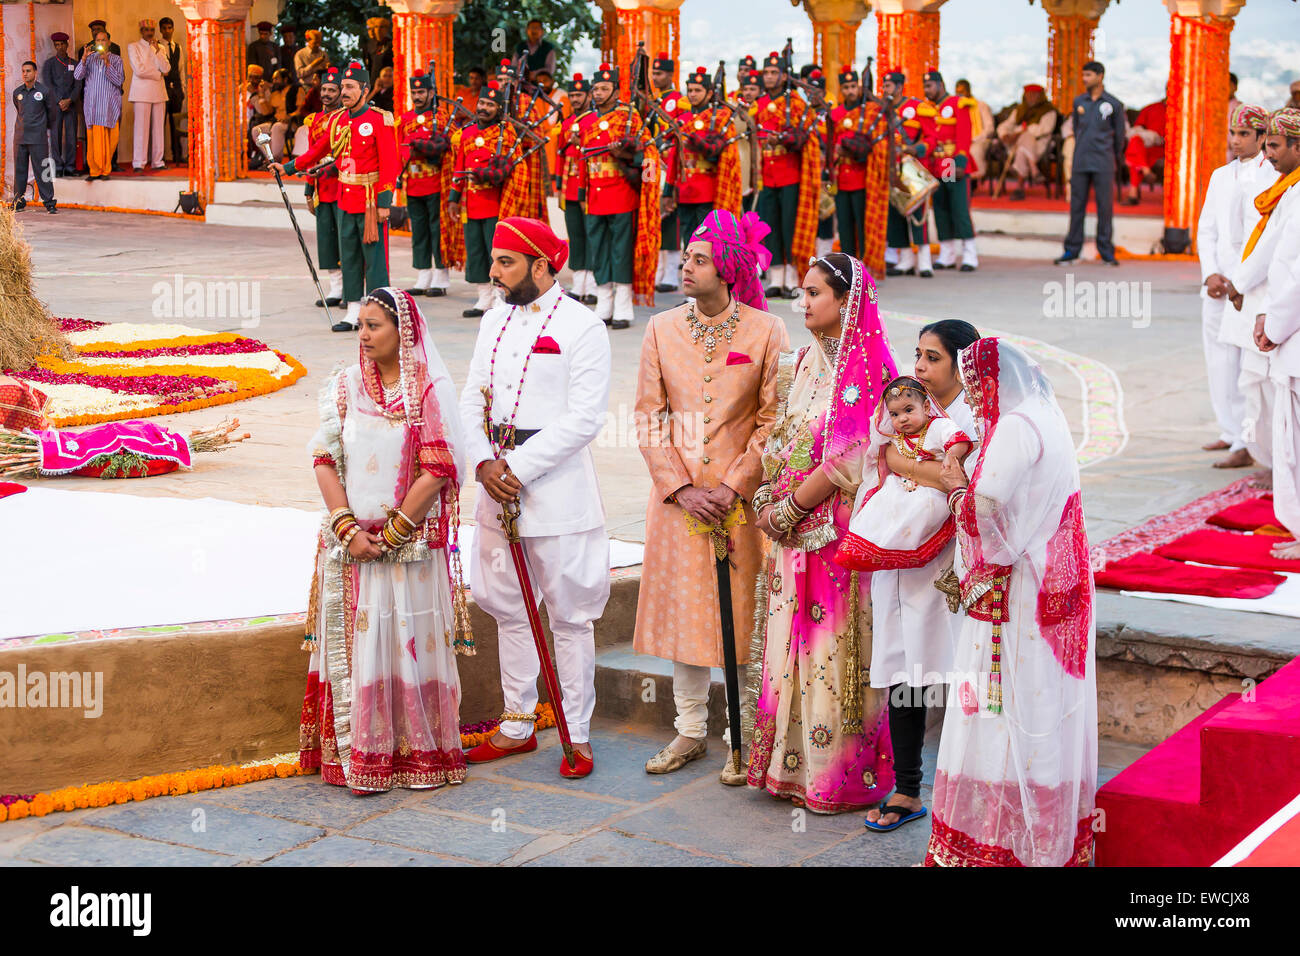 Royal family members waiting for the arrival of the Maharana Rana Sriji Arvind Singh during the Holi festival, City - Stock Image